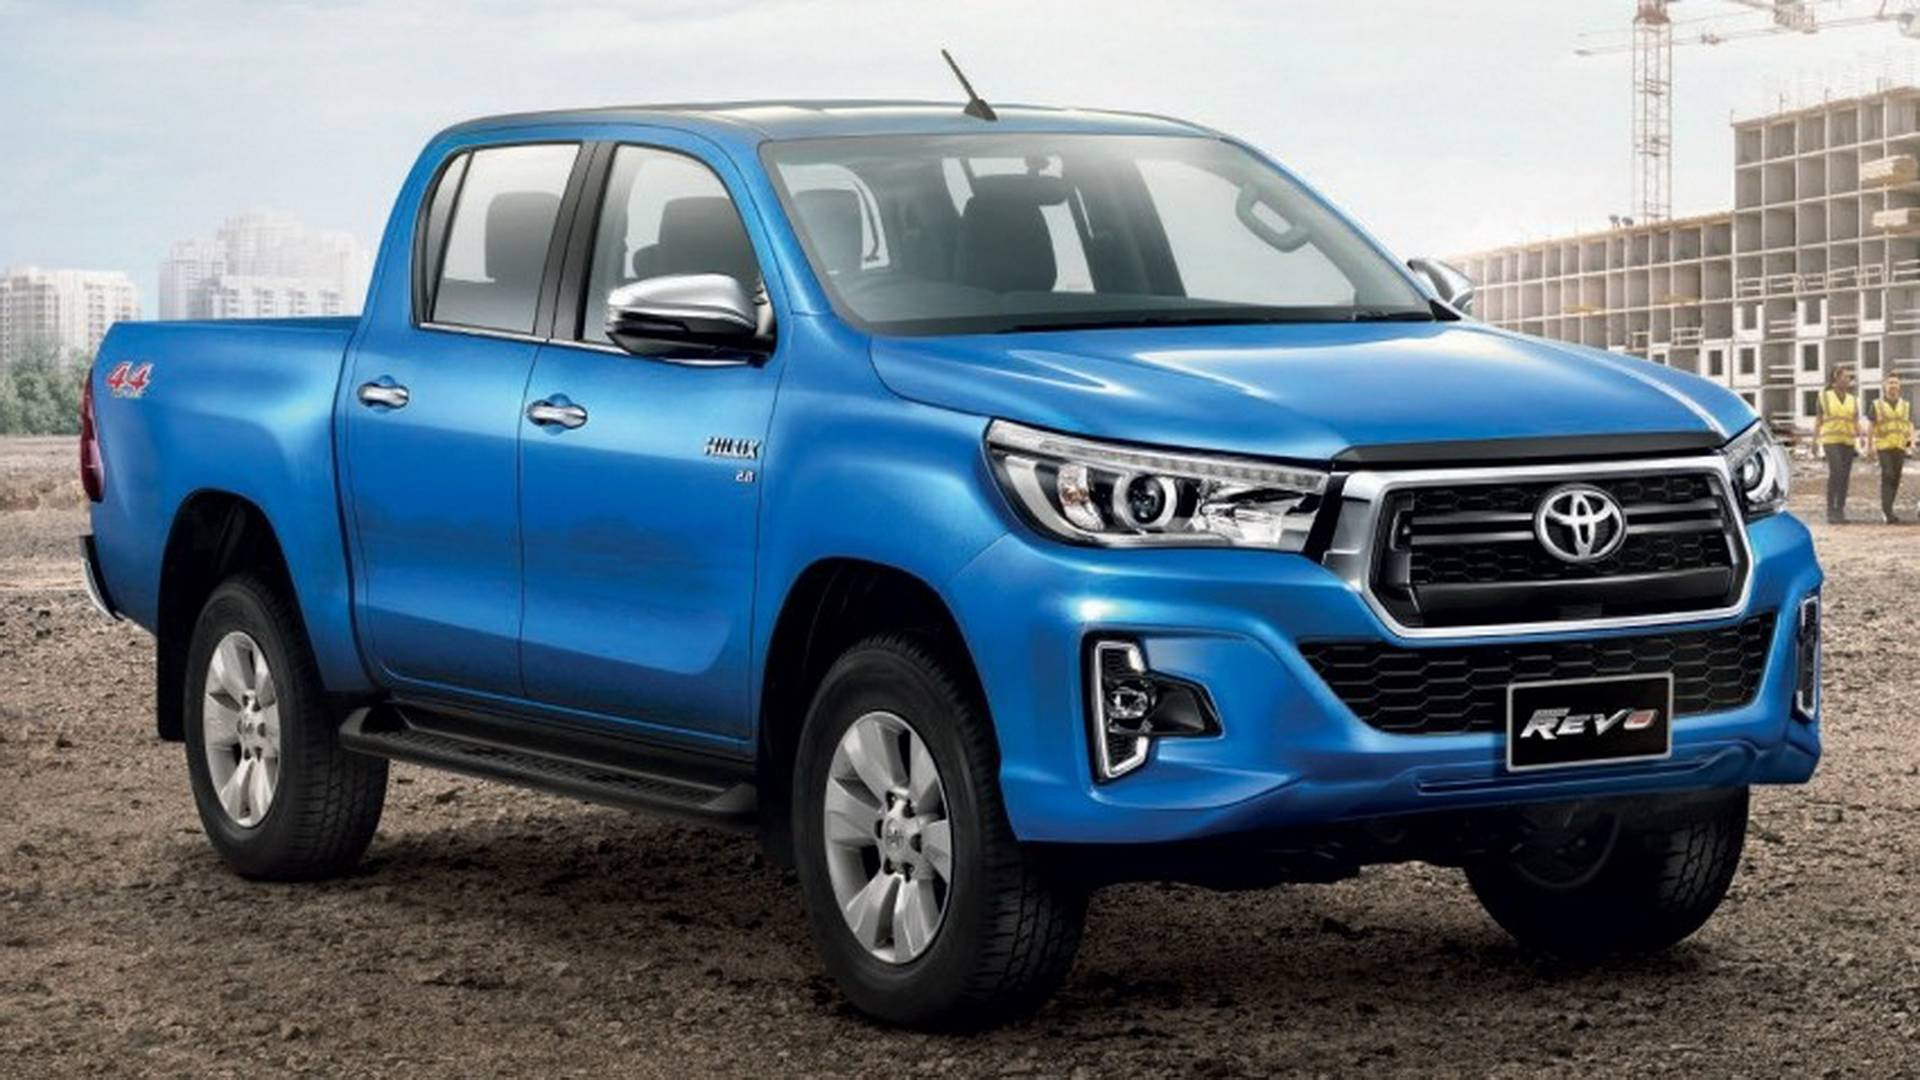 2018-toyota-hilux-facelift (7)